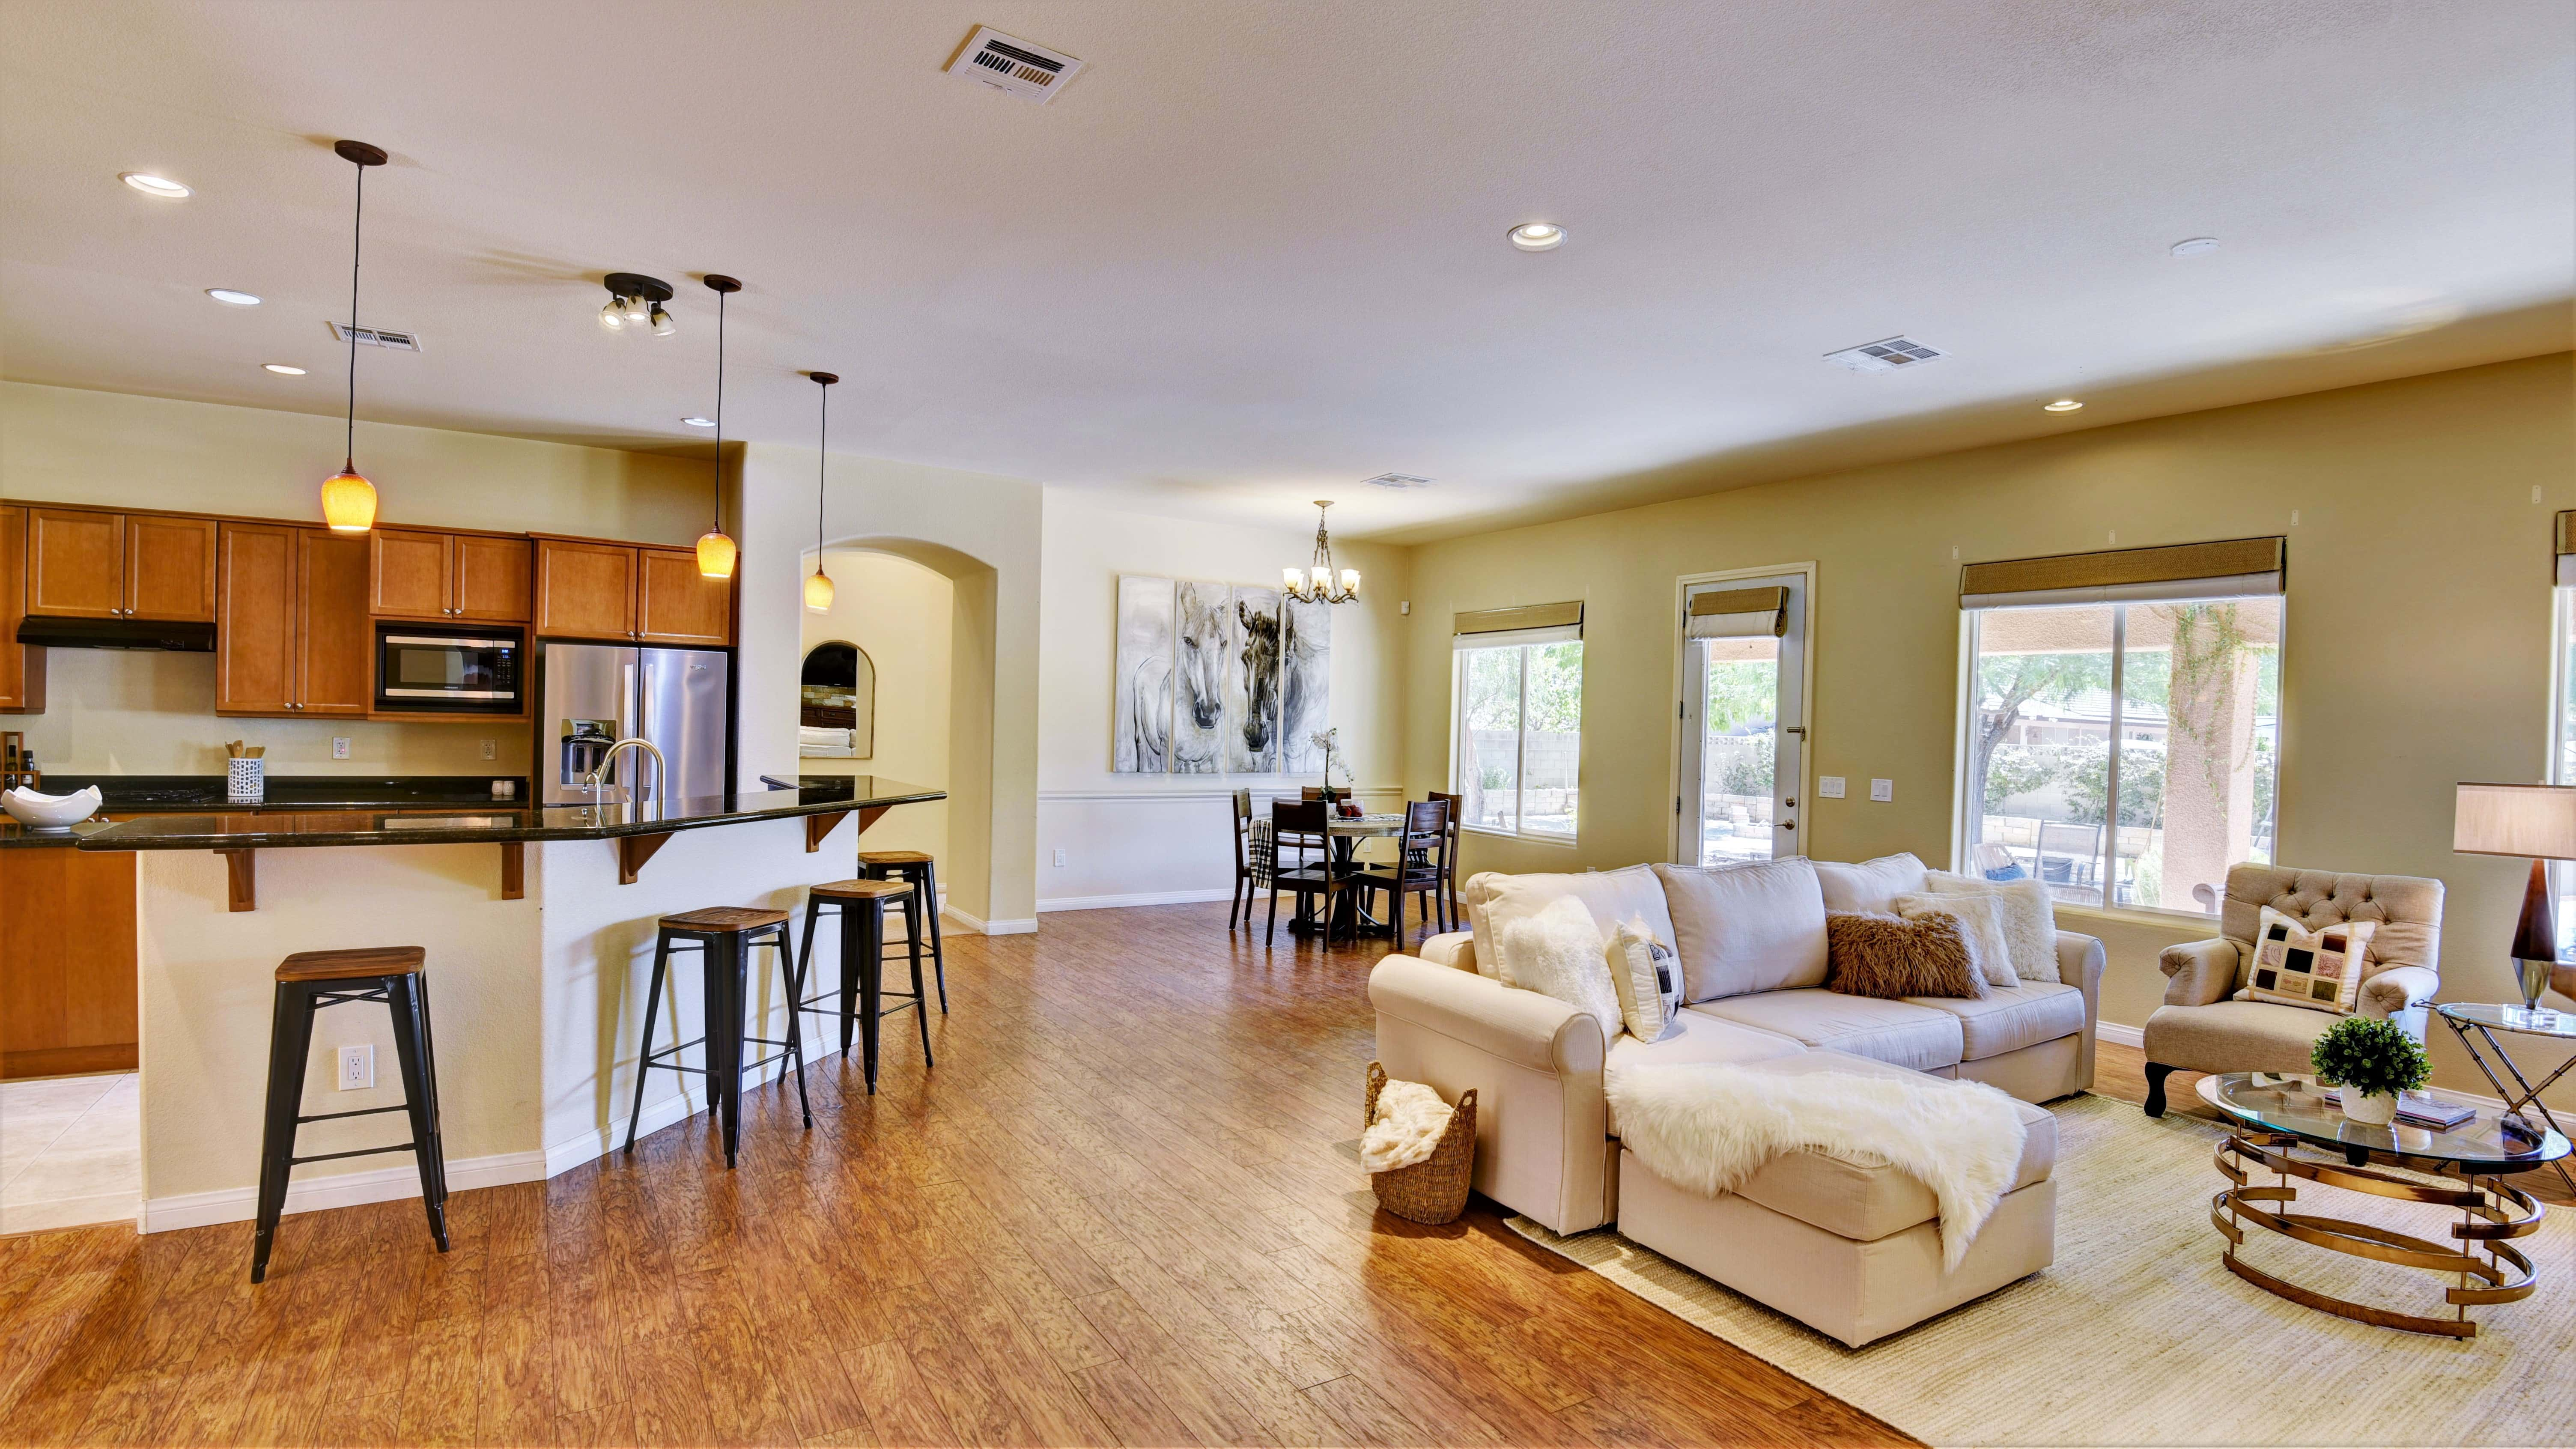 Swipe to see the before in our portfolio gallery of staged homes